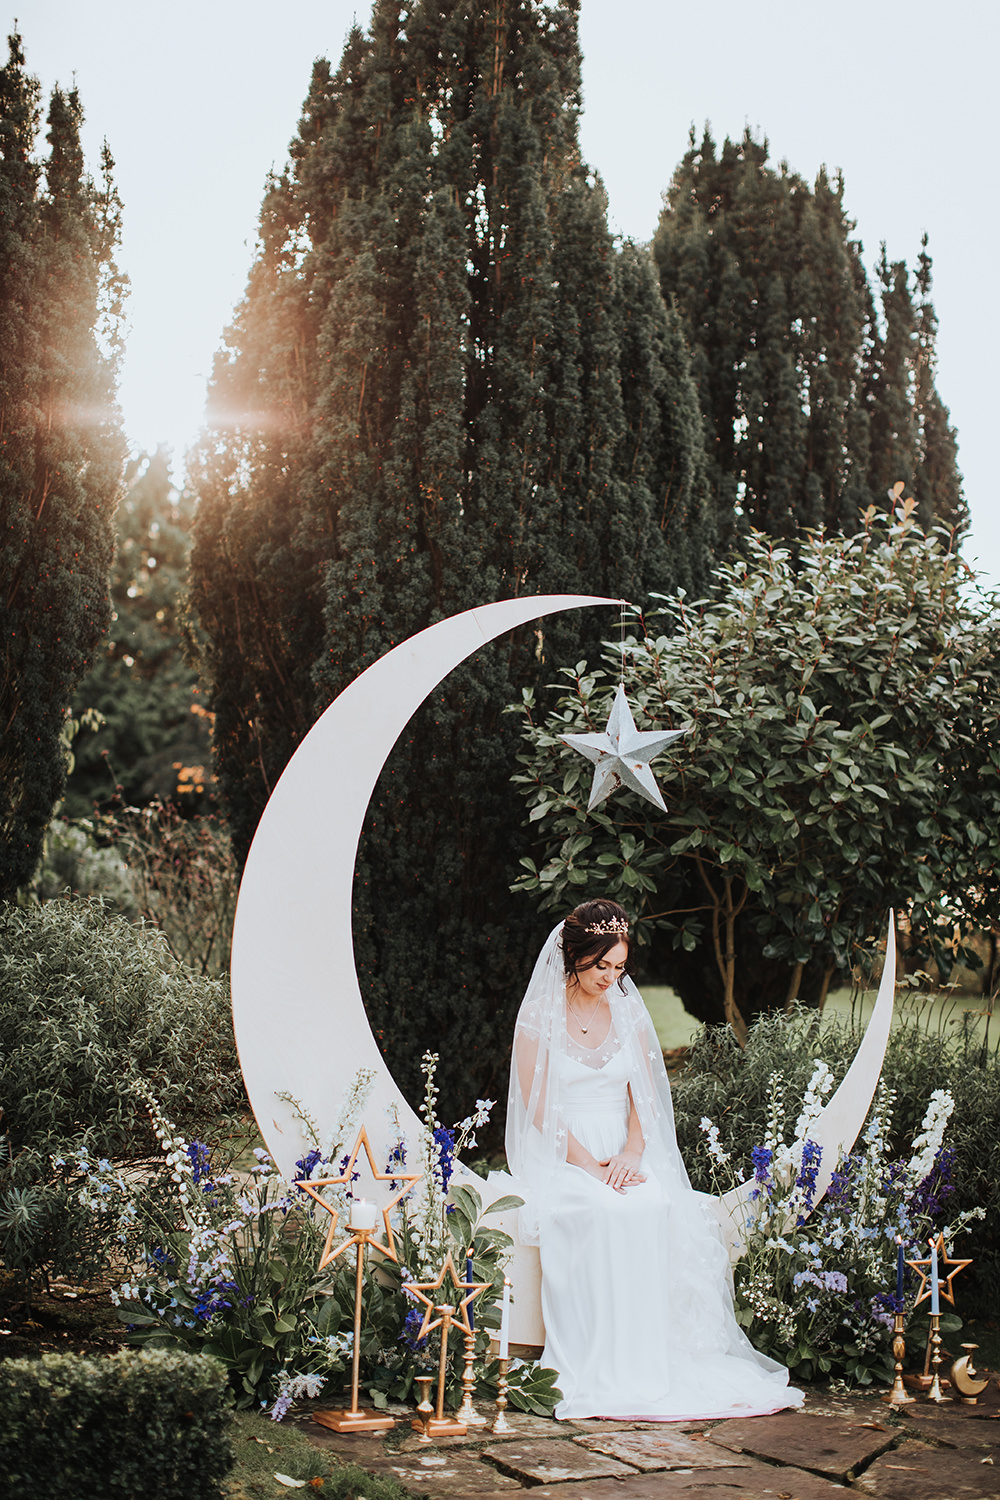 Backdrop Moonbooth Photo Booth Decor Decoration Flowers Candles Moon Stars Wedding Ideas Olegs Samsonovs Photography